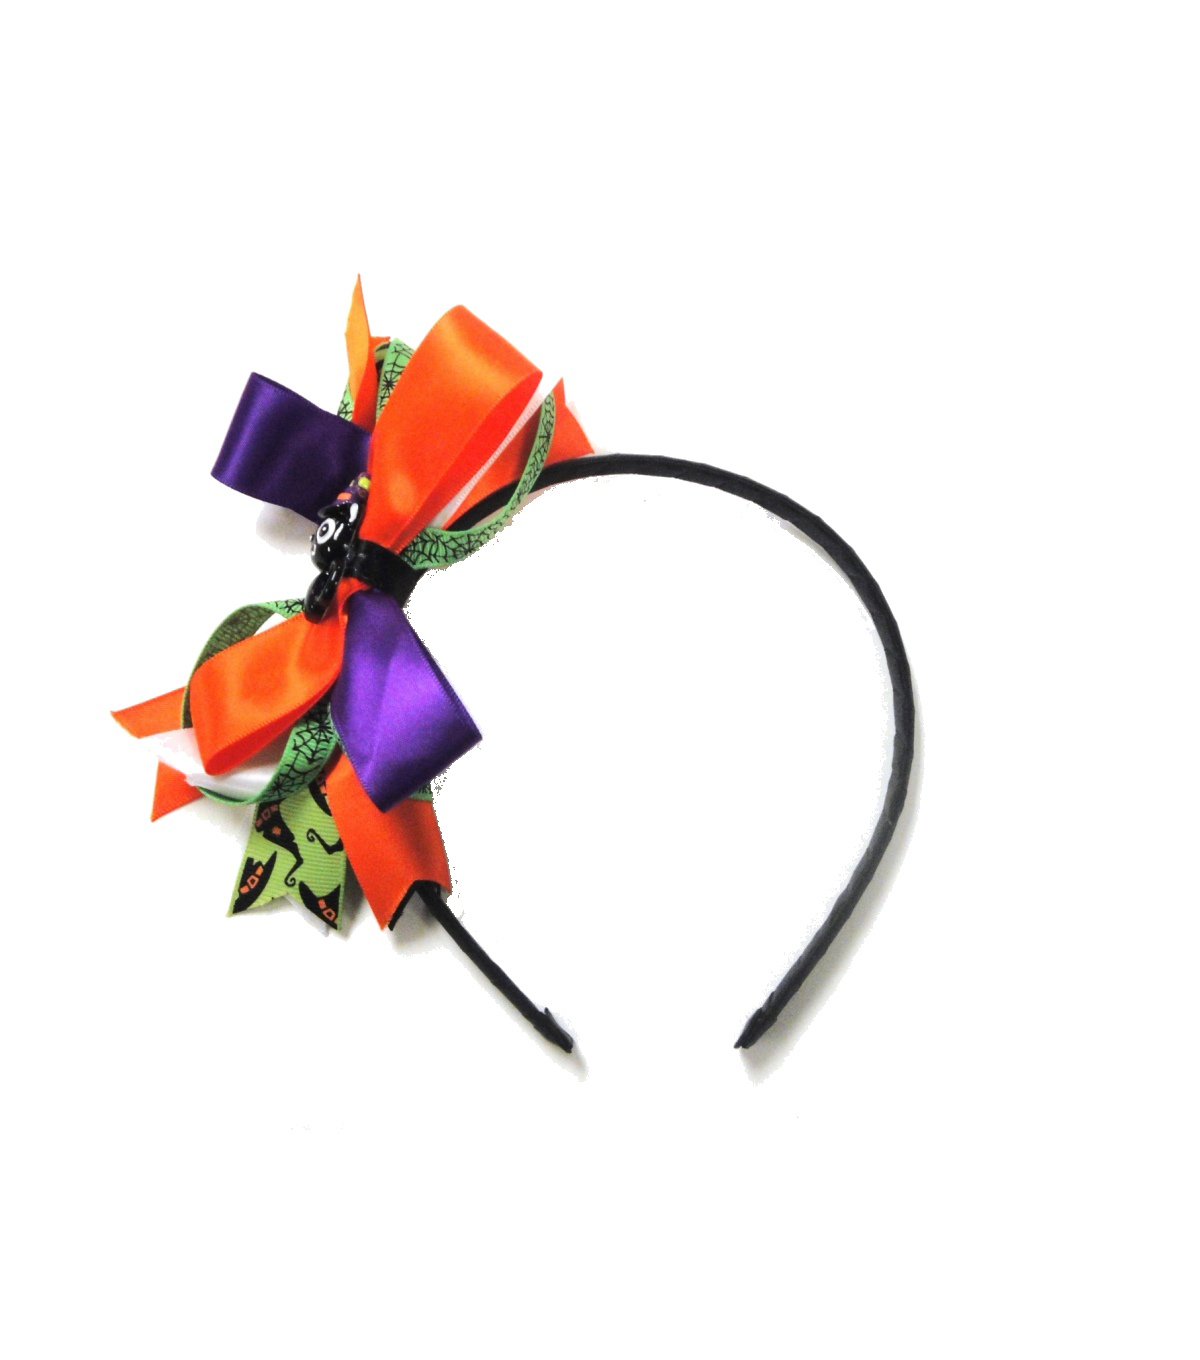 Maker\u0027s Halloween Black Cat Headband with Ribbons